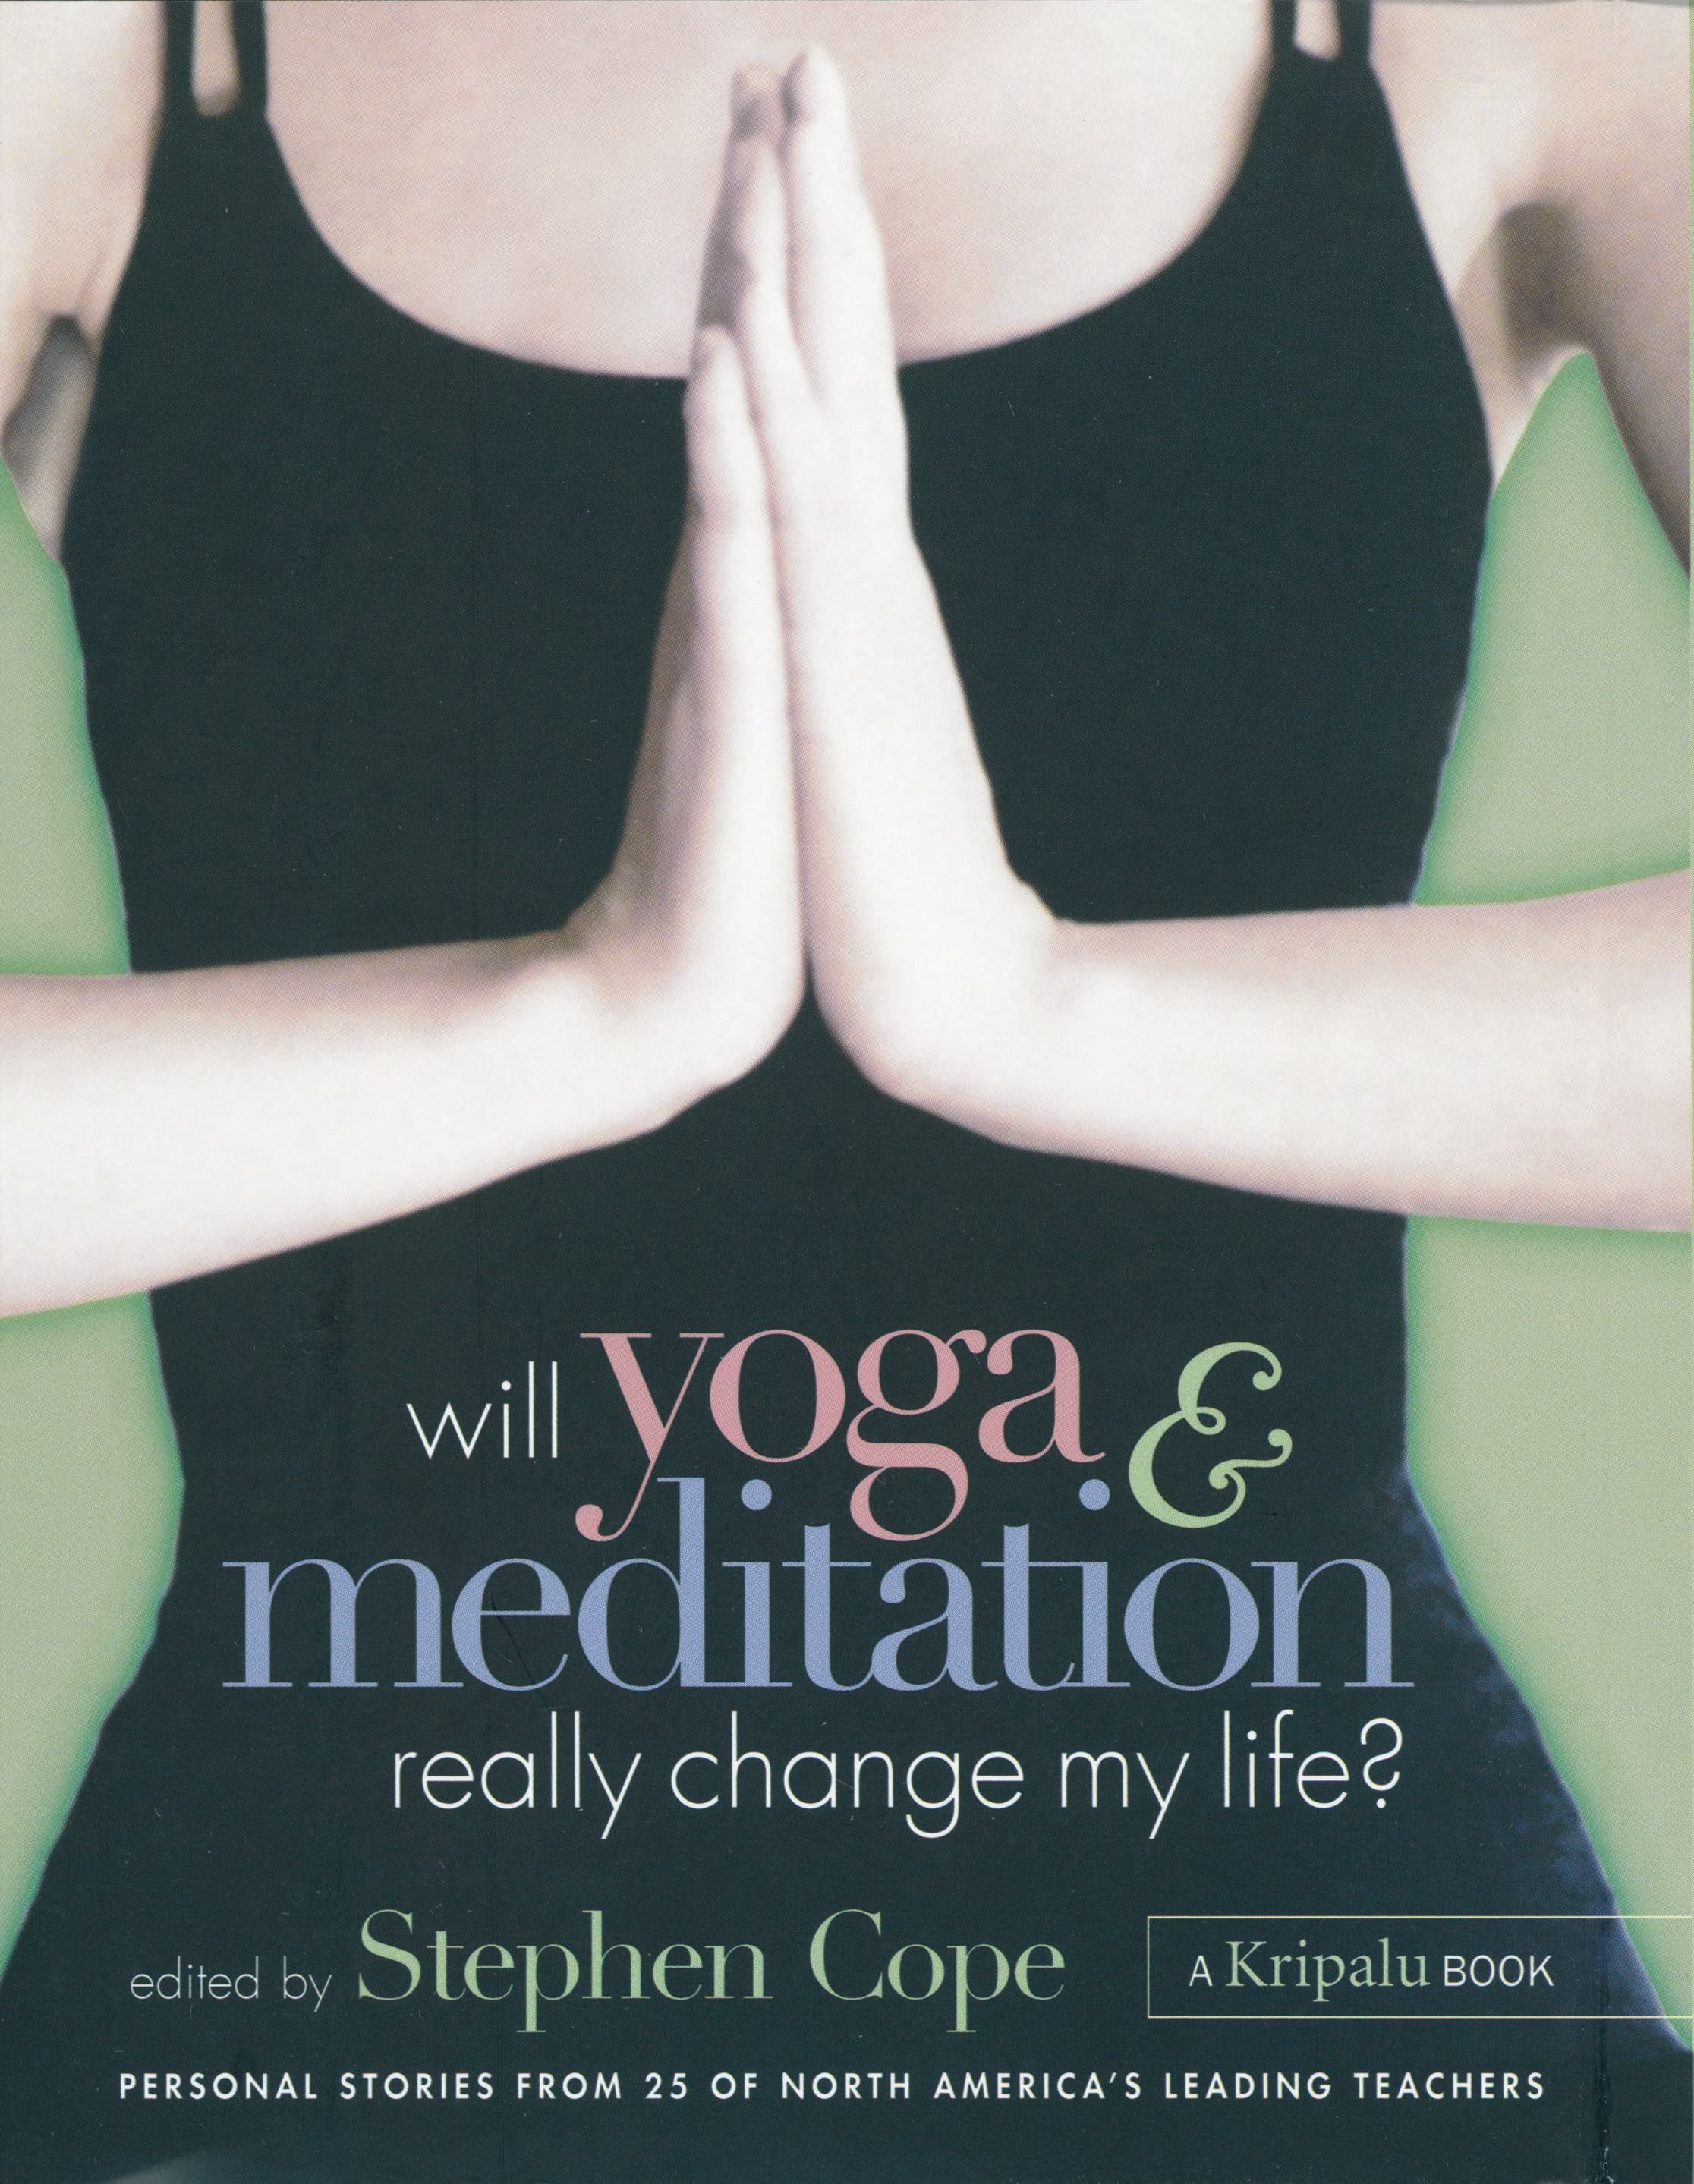 Will Yoga & Meditation Really Change My Life? Personal Stories from 25 of North America's Leading Teachers; A Kripalu Book - Stephen Cope